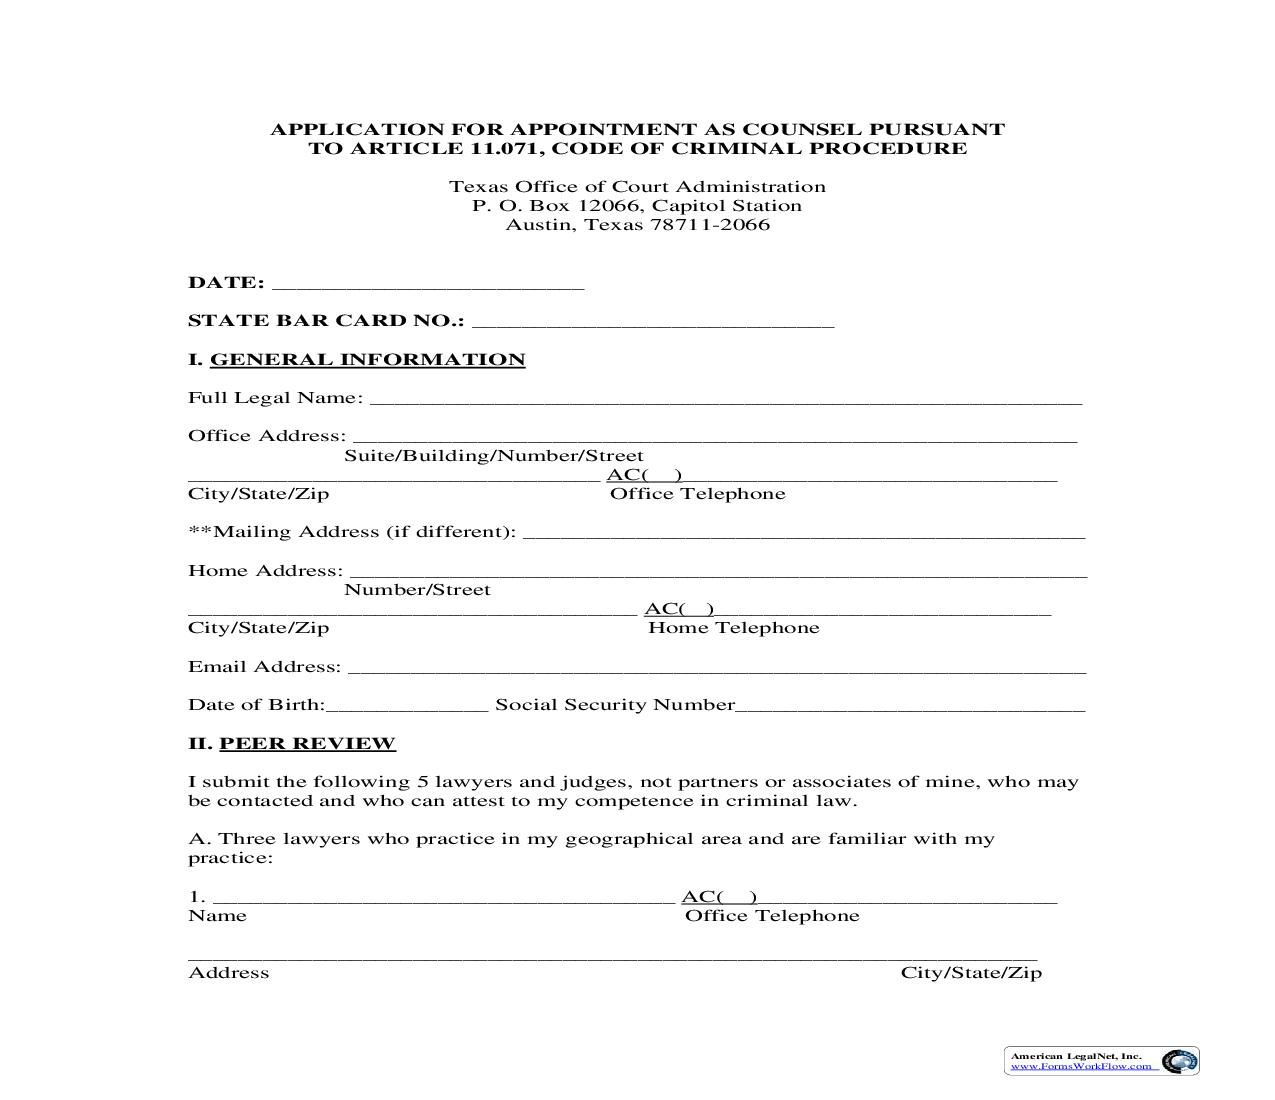 This Is A Texas Form That Can Be Used For Court Of